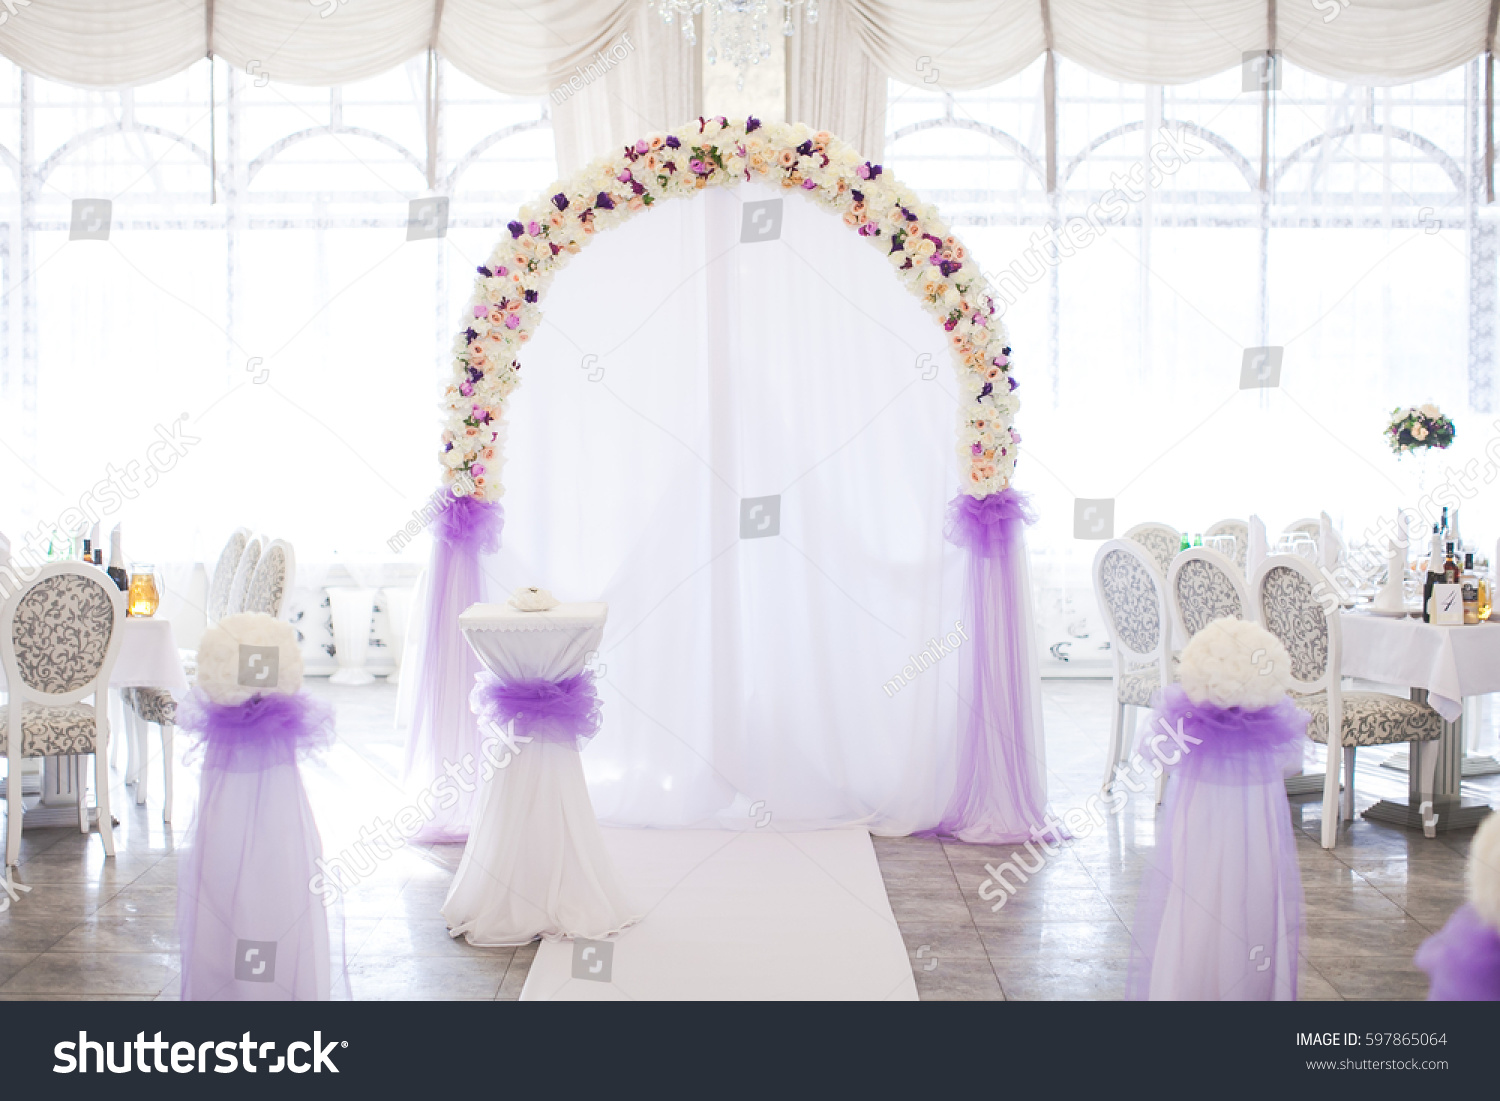 Flower Arch Fresh Colors Wedding Ceremony Stock Photo (Edit Now ...